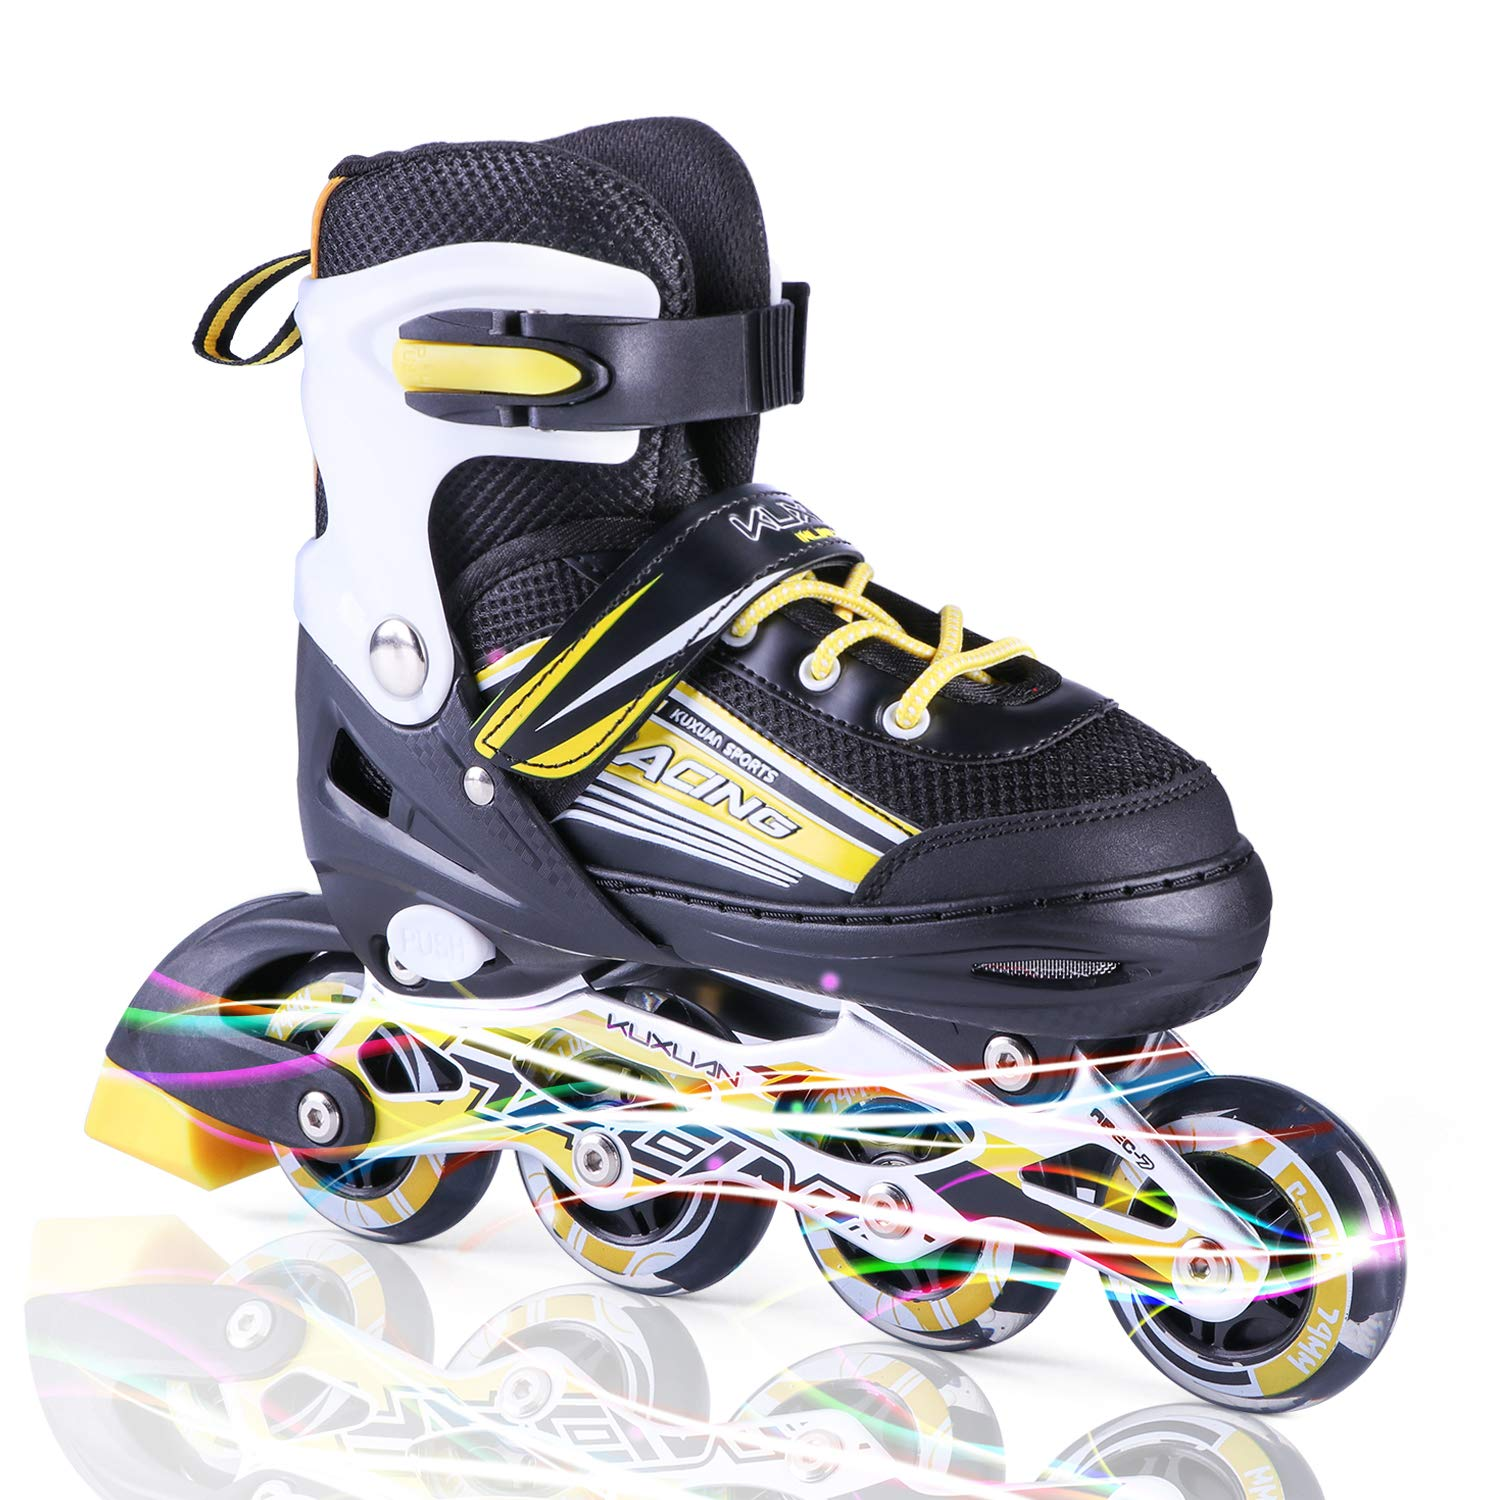 Kuxuan Sayo Inline Skates Adjustable for Kids,Boys Rollerblades with All Wheels Light up,Fun Illuminating for Girls and Youth - Yellow M